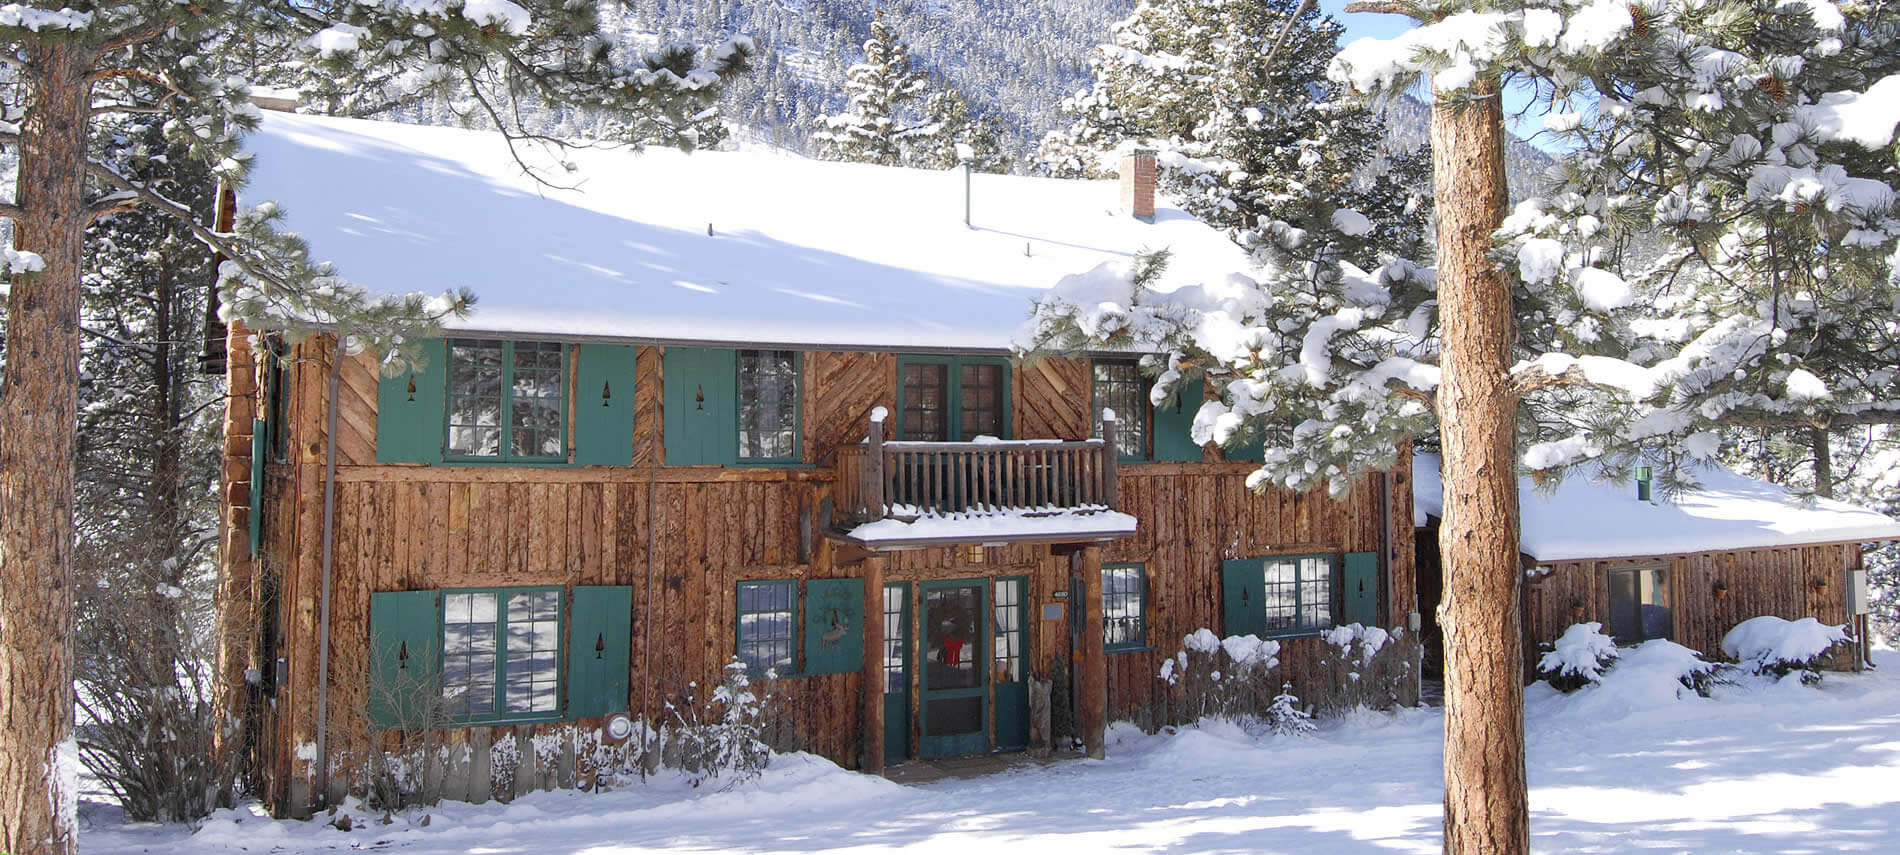 Brown wood cabin with green shutters and snow covered roof surrounded by snowcapped pine trees and snow covered ground